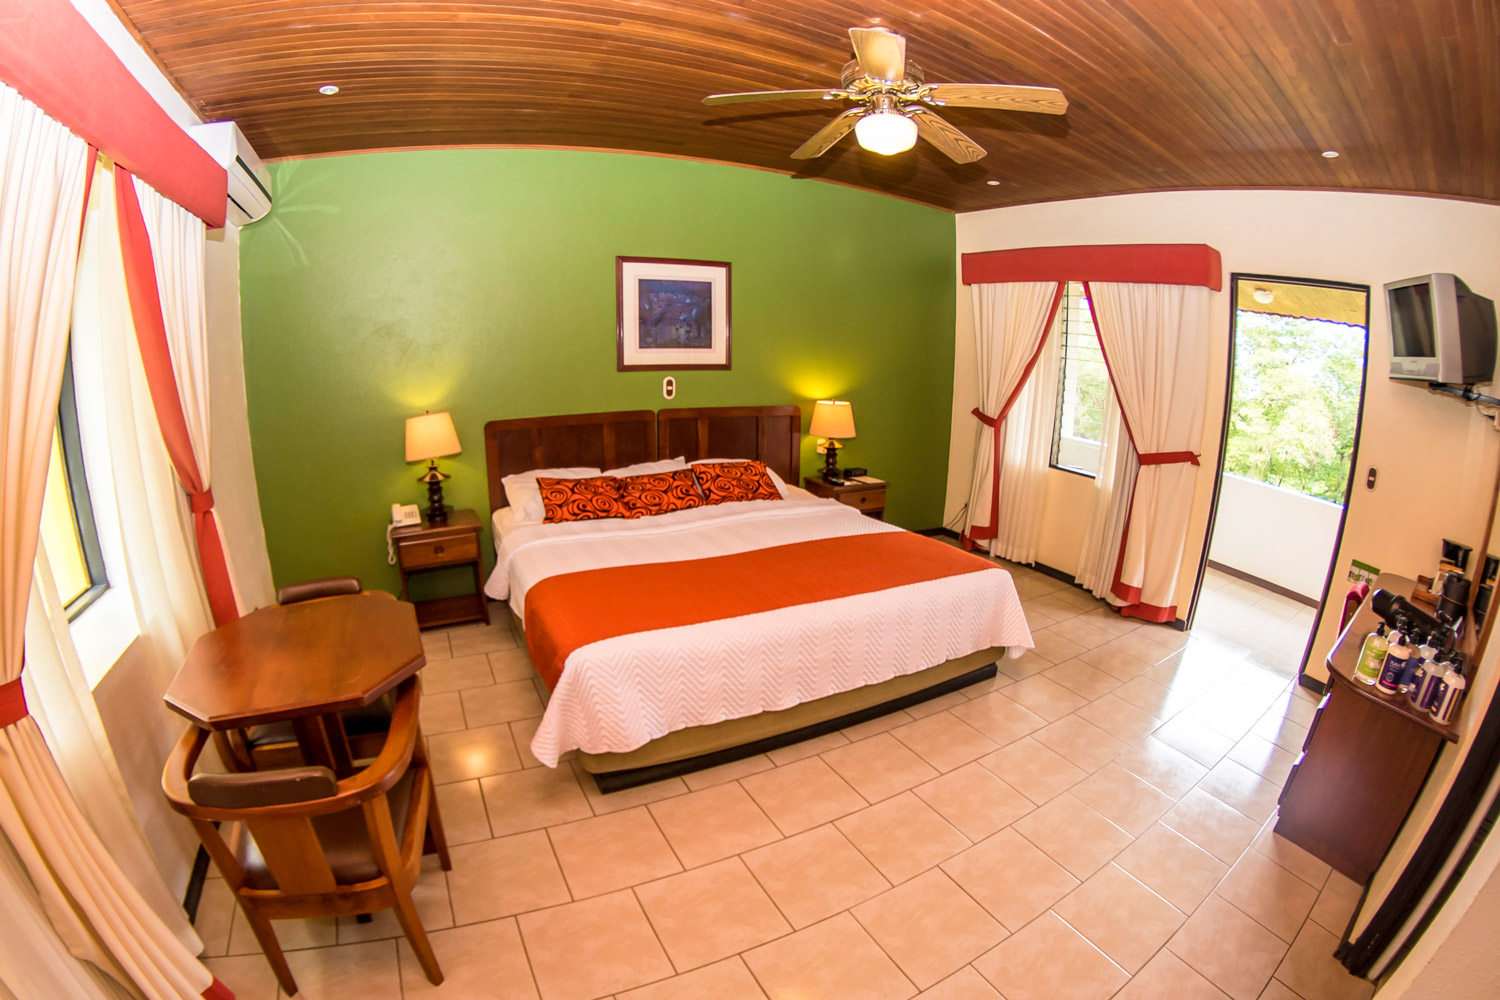 Lodging Rooms Standard King Size